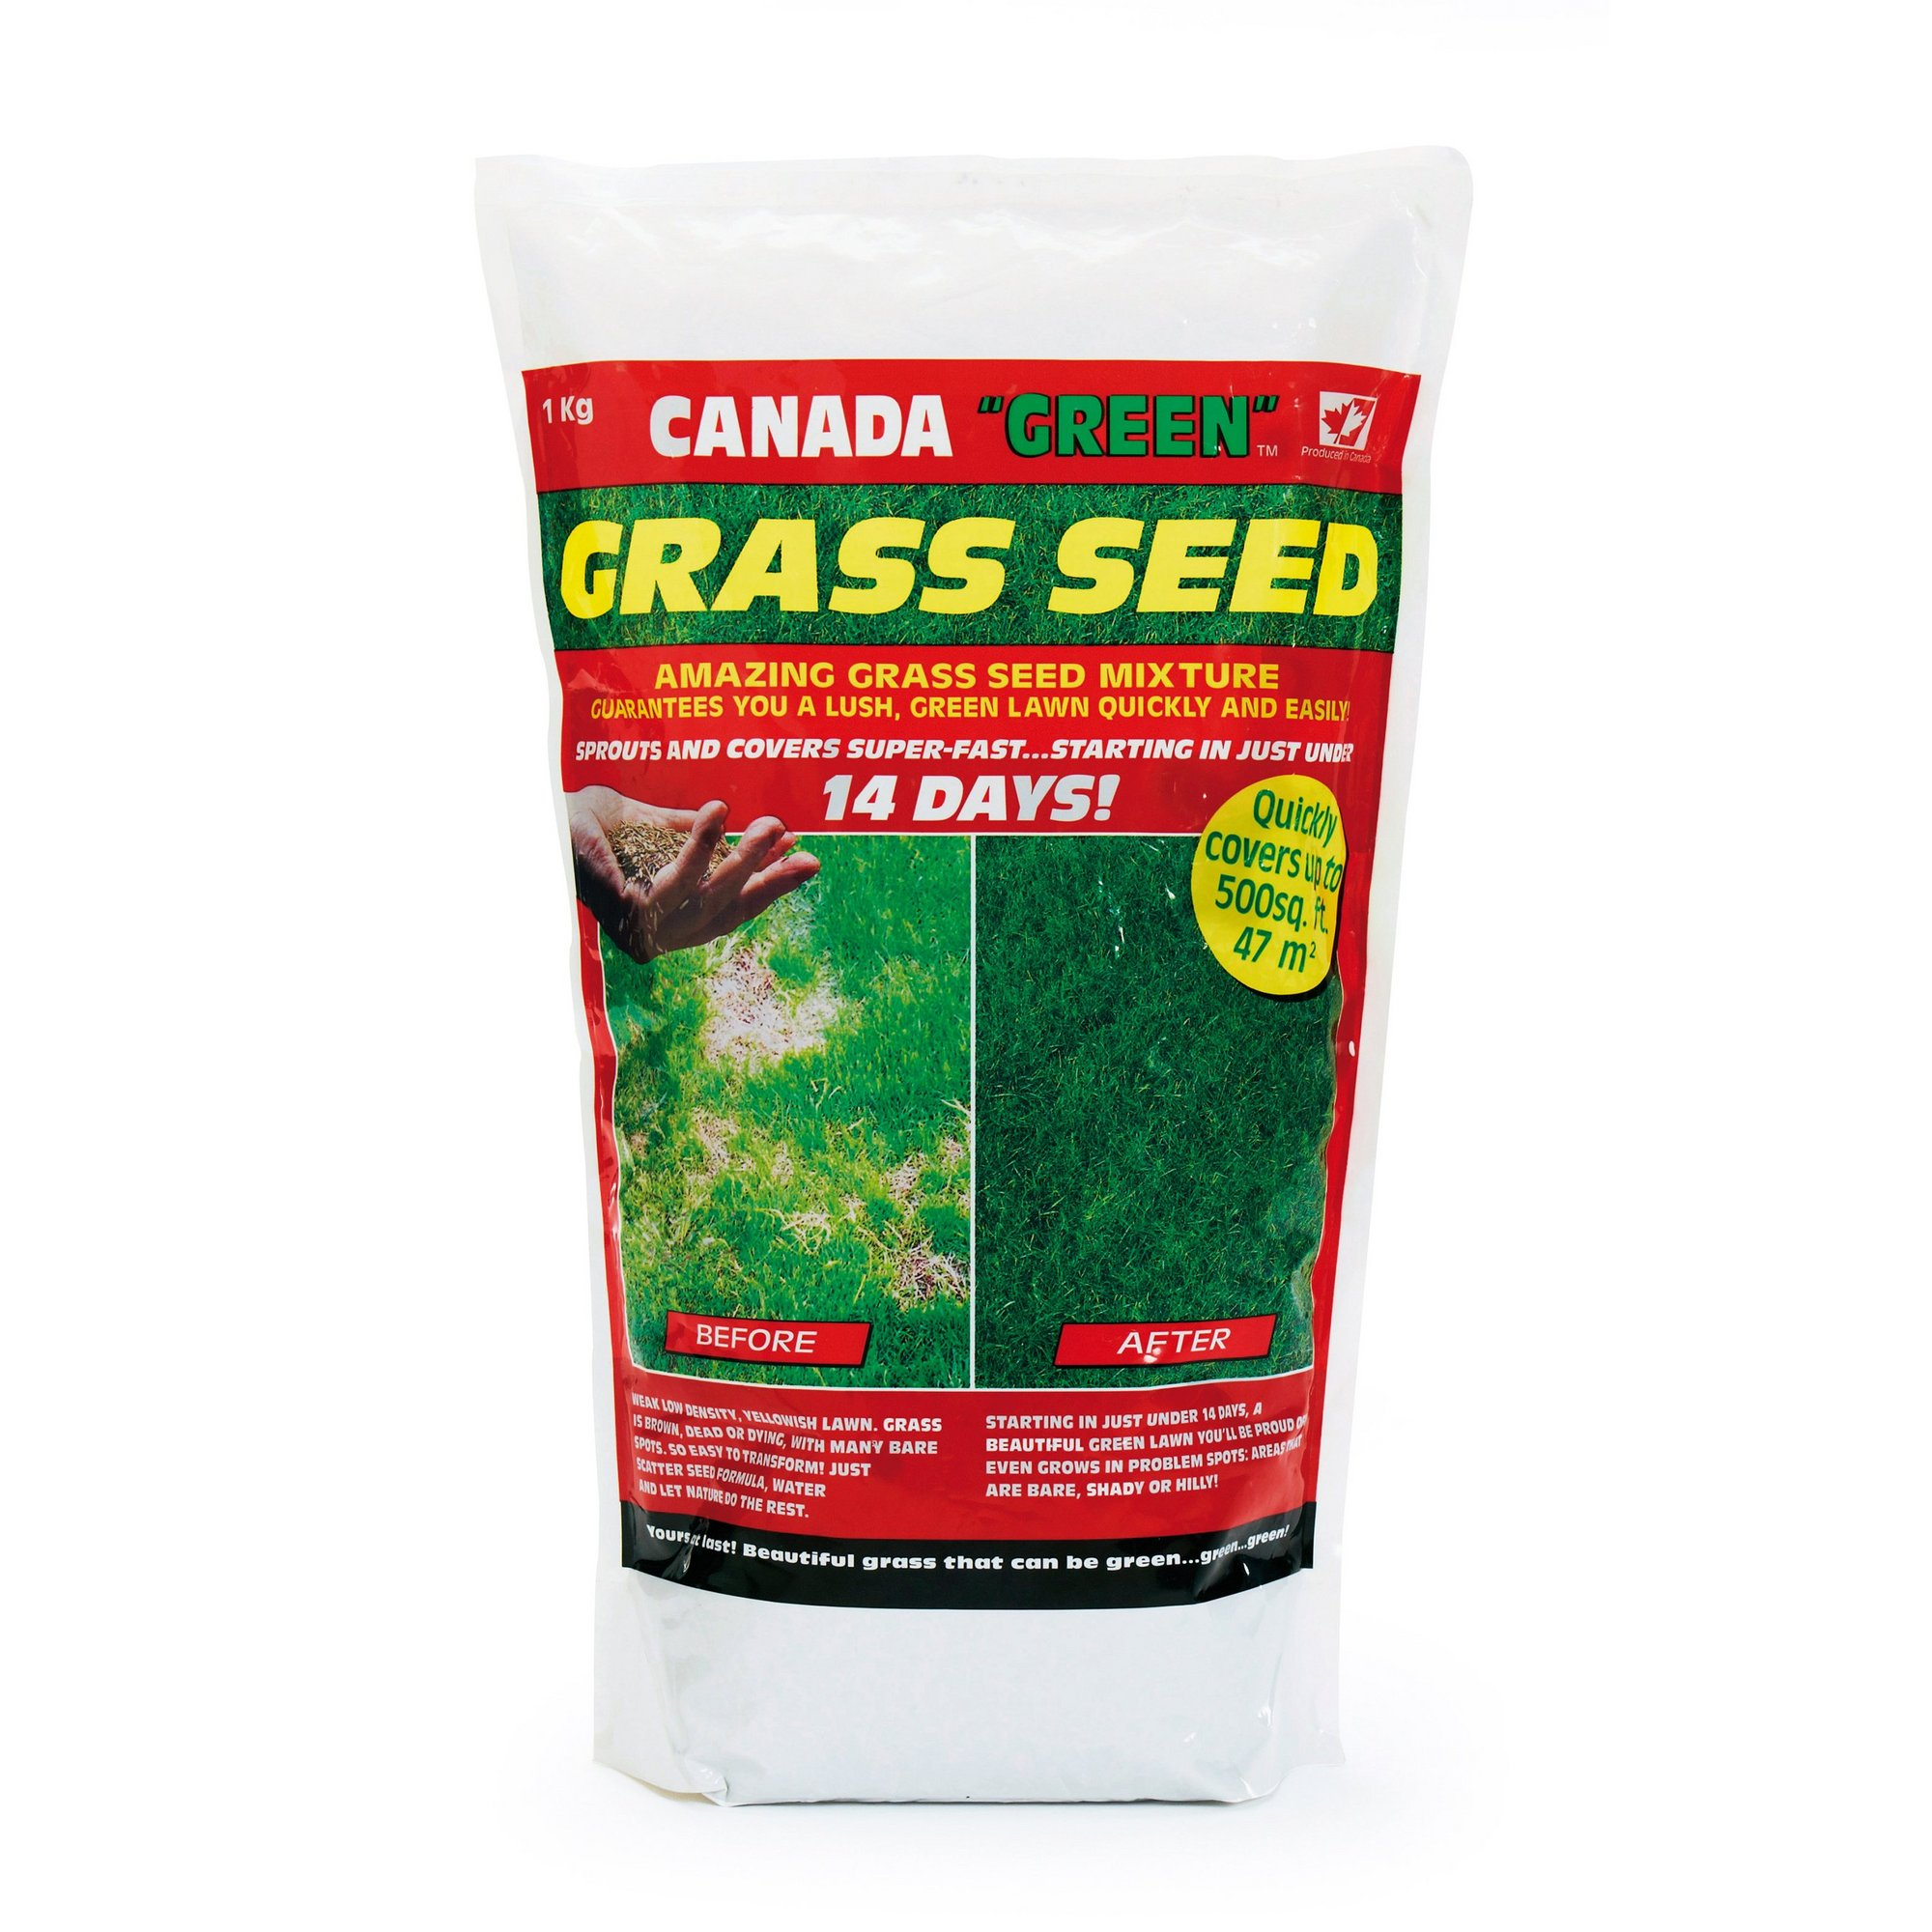 Image of Canada Green 1Kg Pack Grass Seed